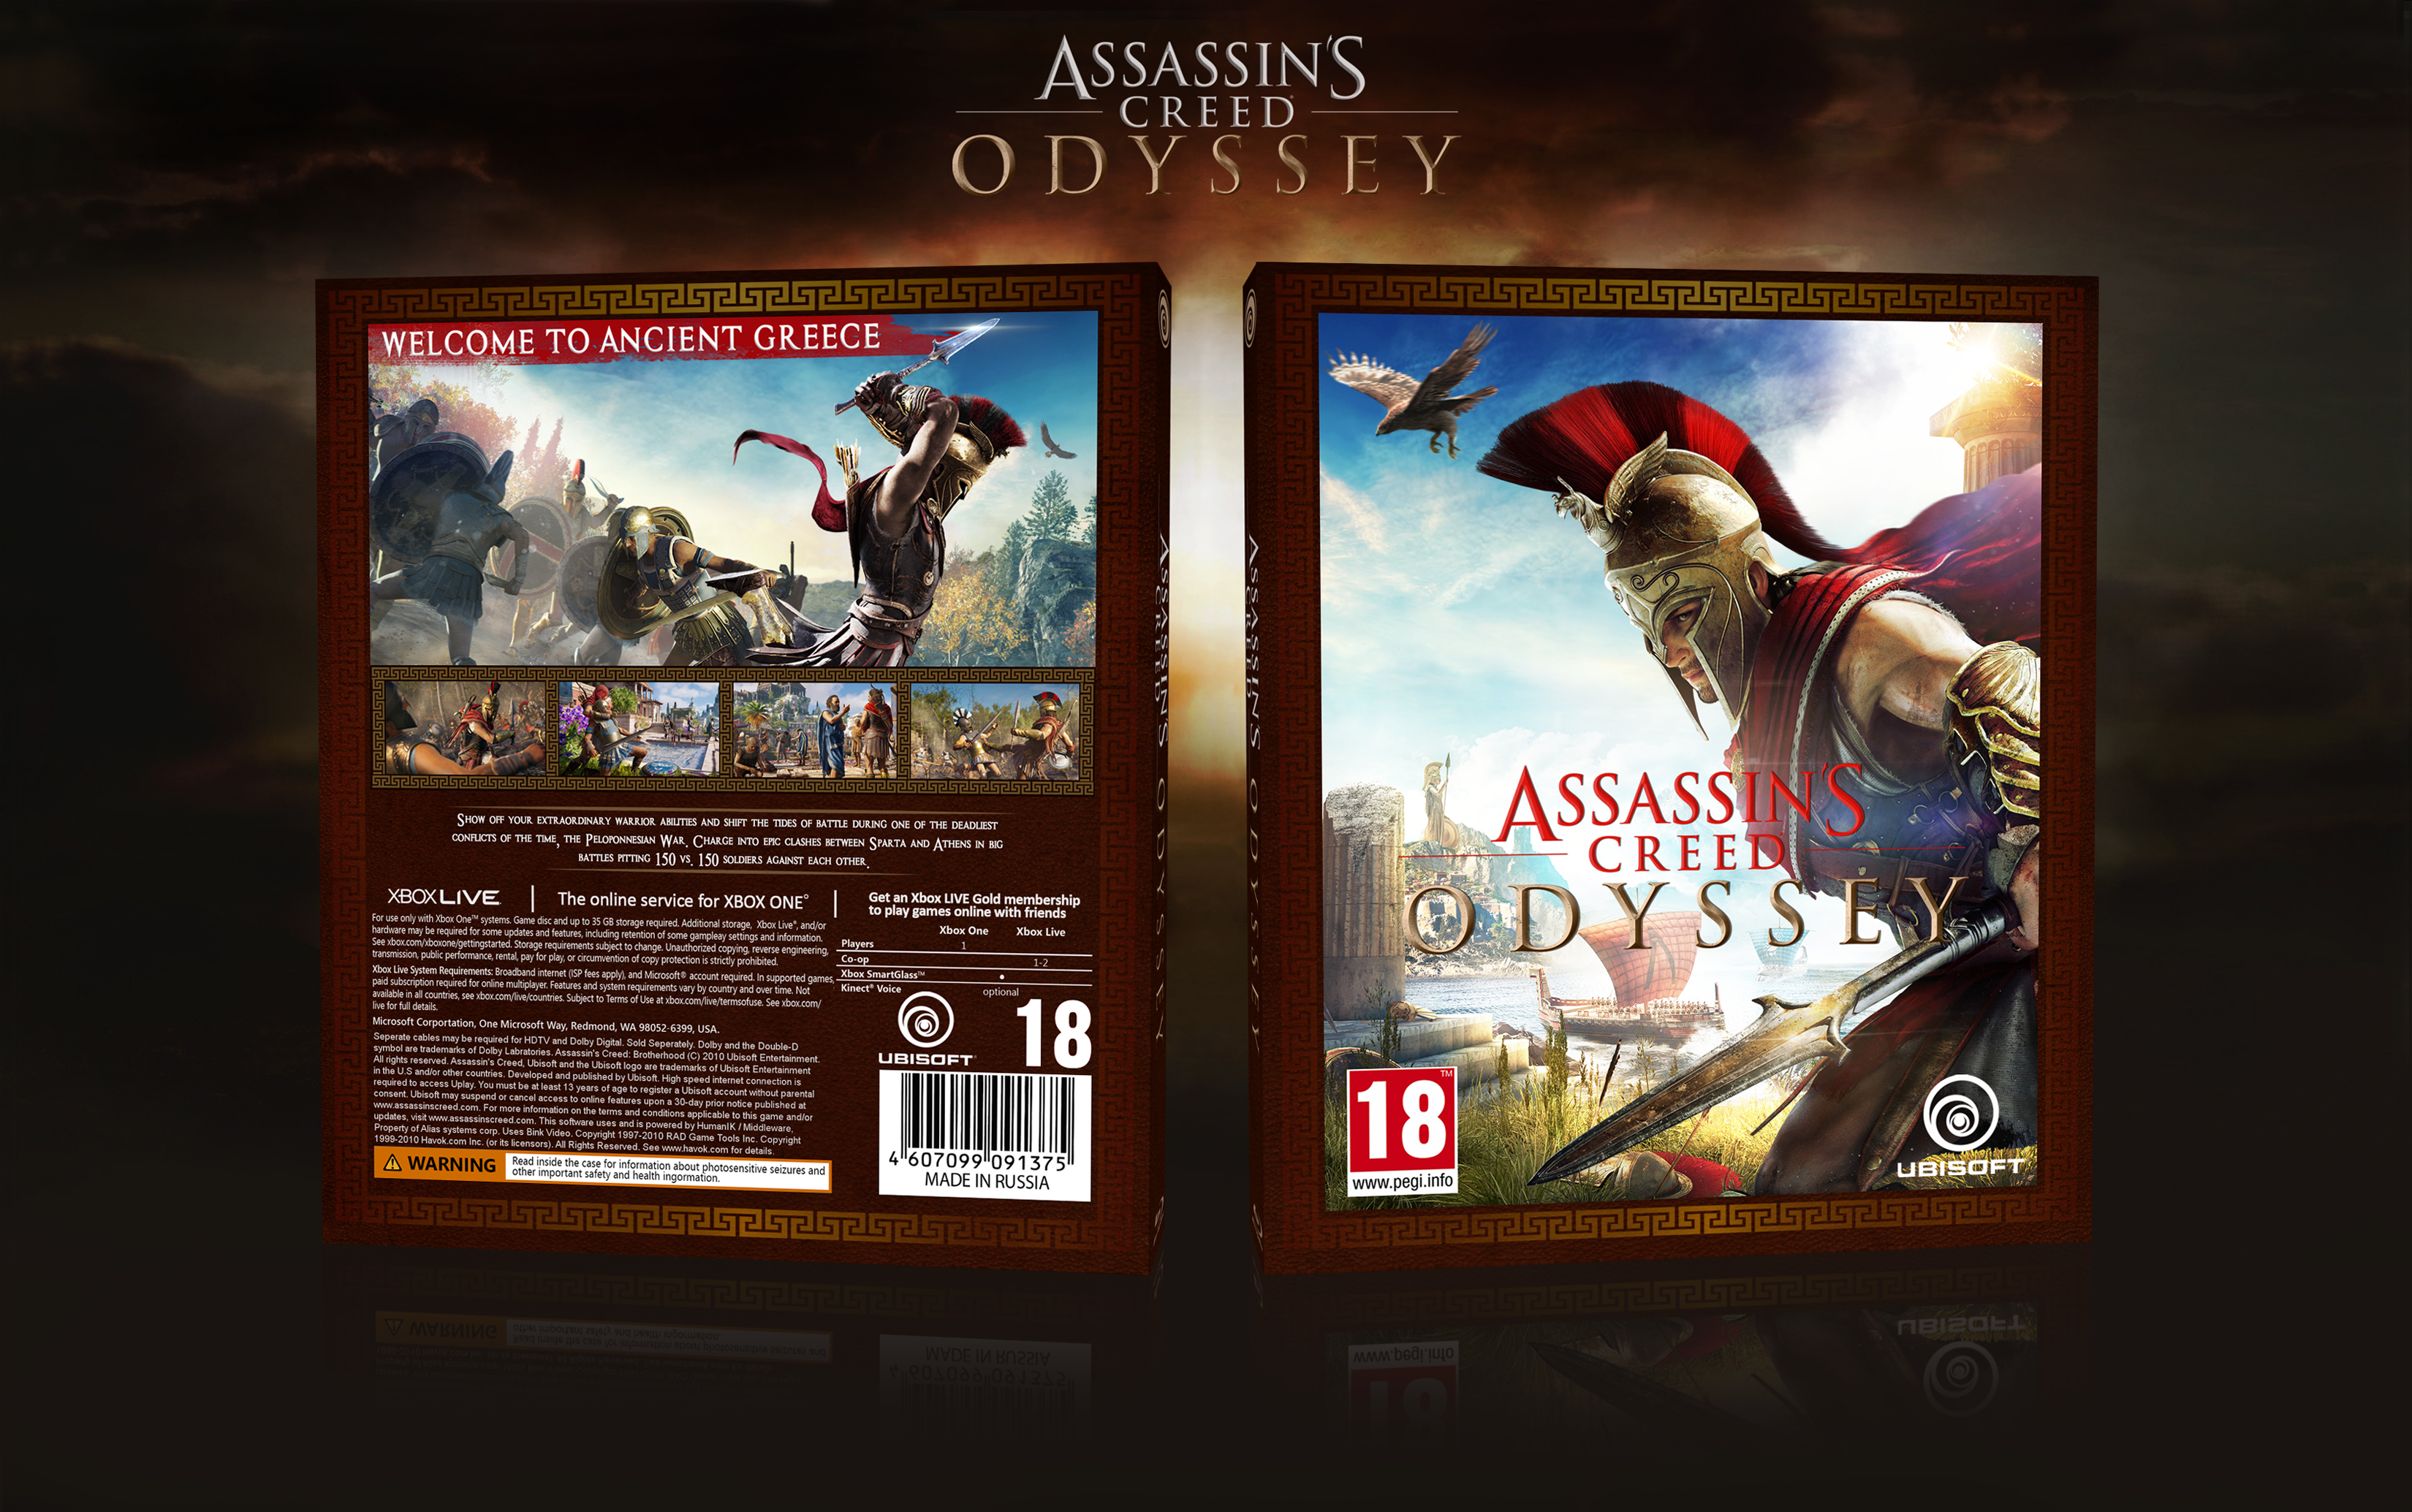 Assassin's Creed: Odyssey box cover